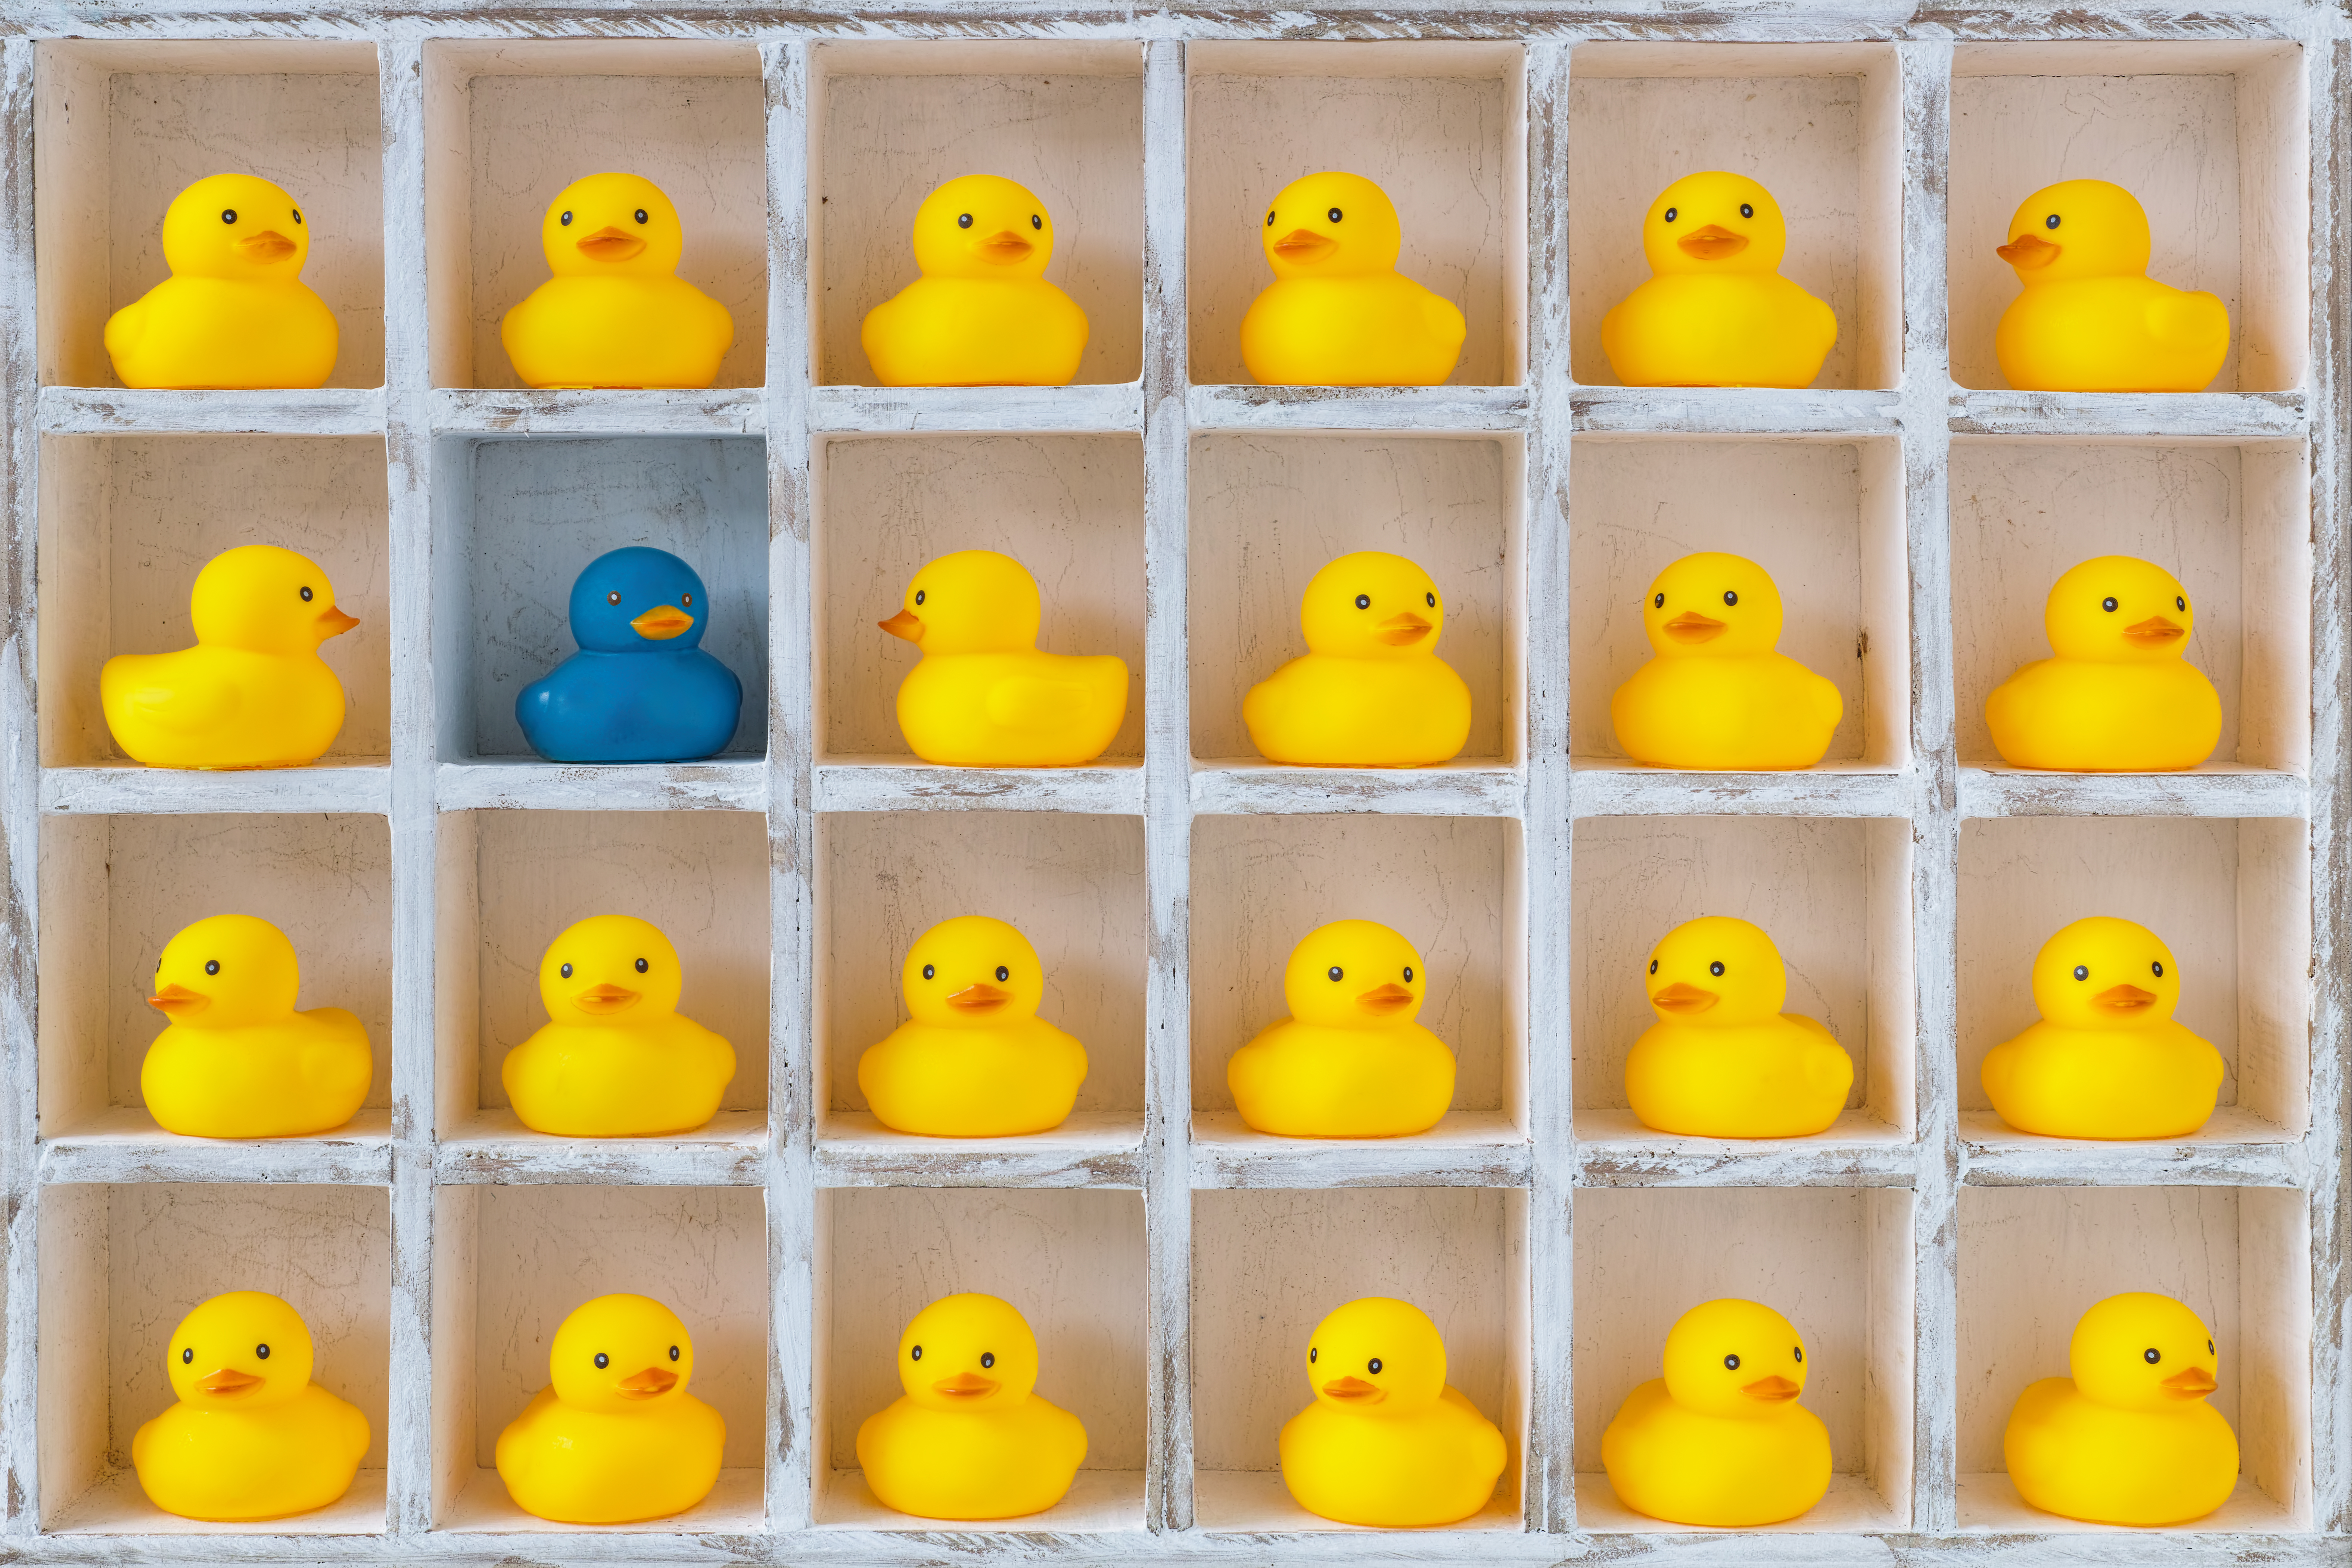 Pigeon hole box with 24 boxes, 23 are filled with small yellow rubber ducks and one has a differeent coloured blue duck. Concept image representing standing out from the crowd, being different, not fitting in etc.